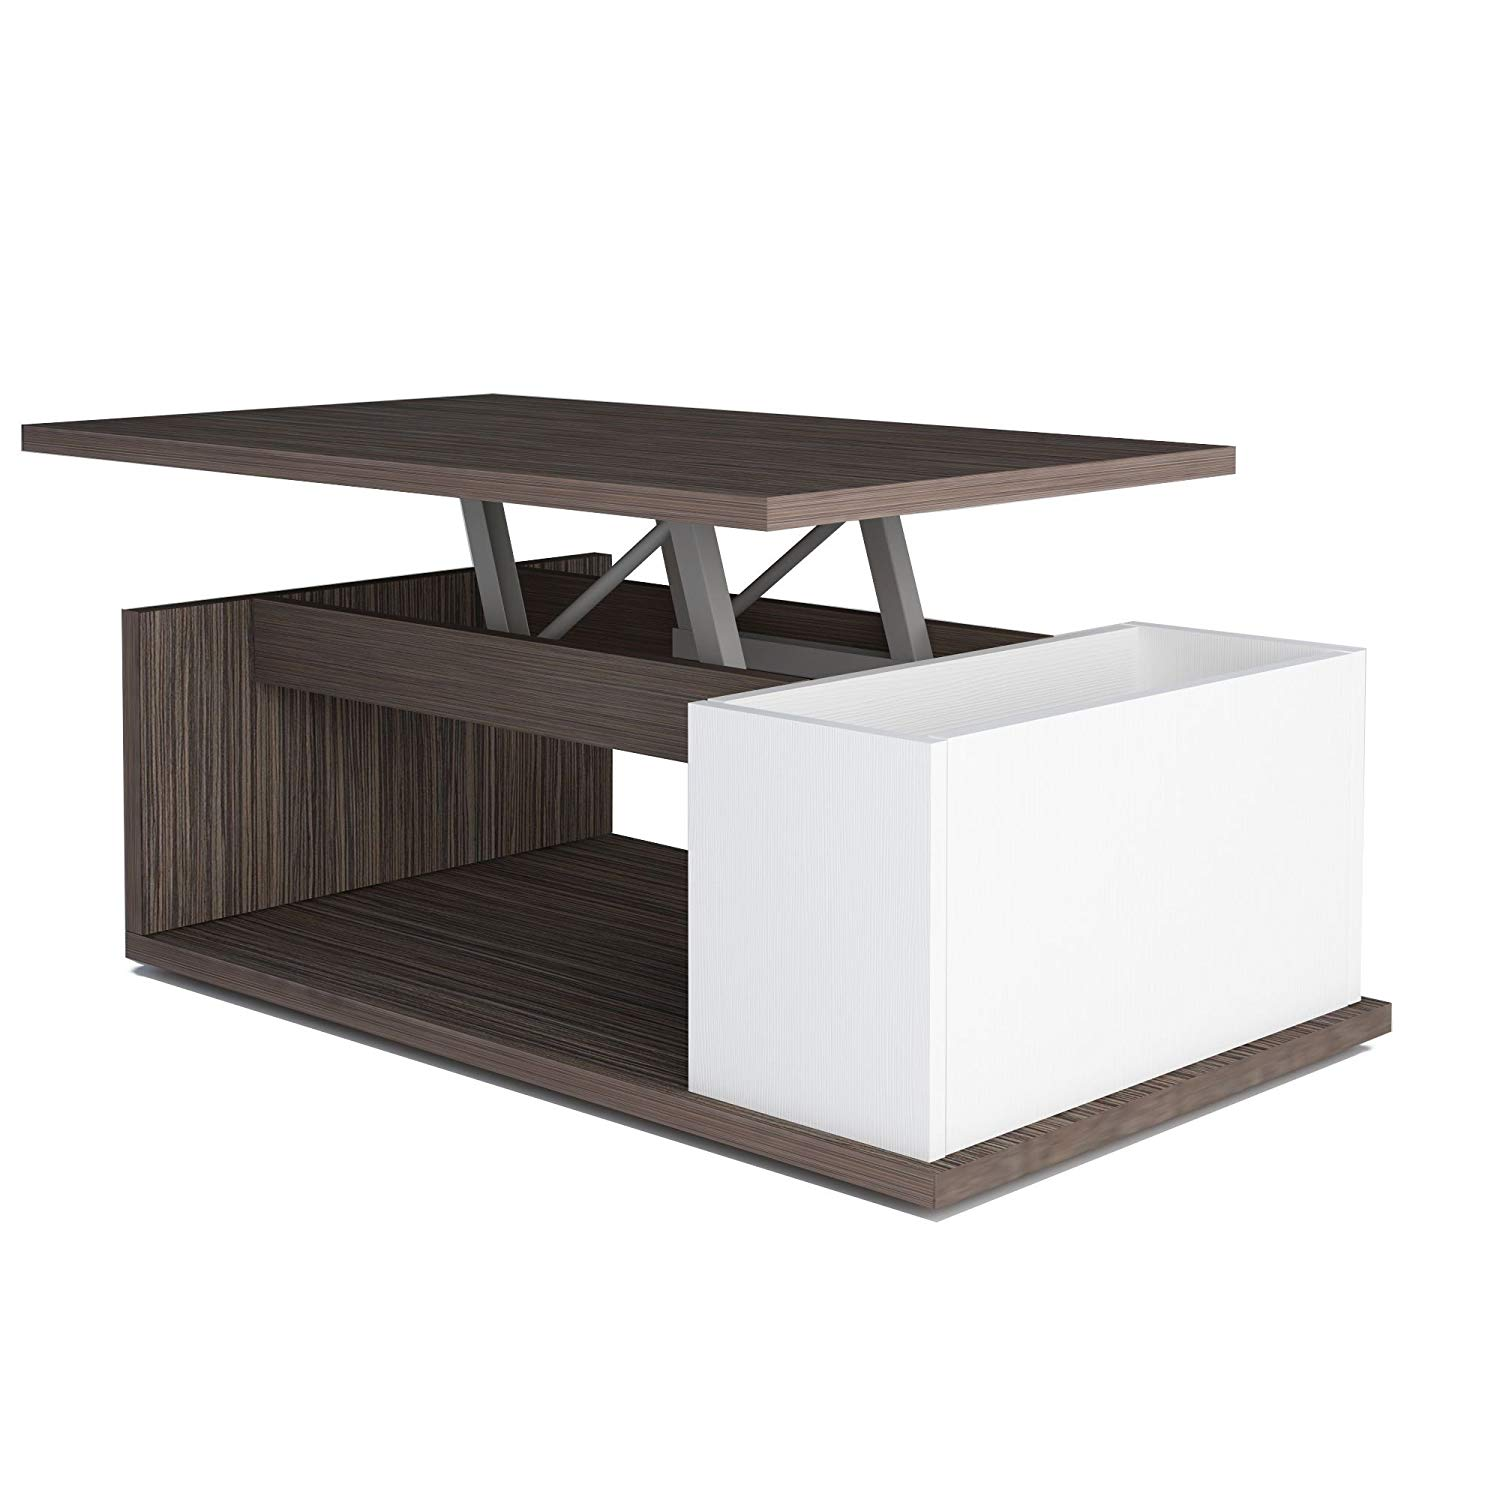 Table basse aldana - plateau relevable